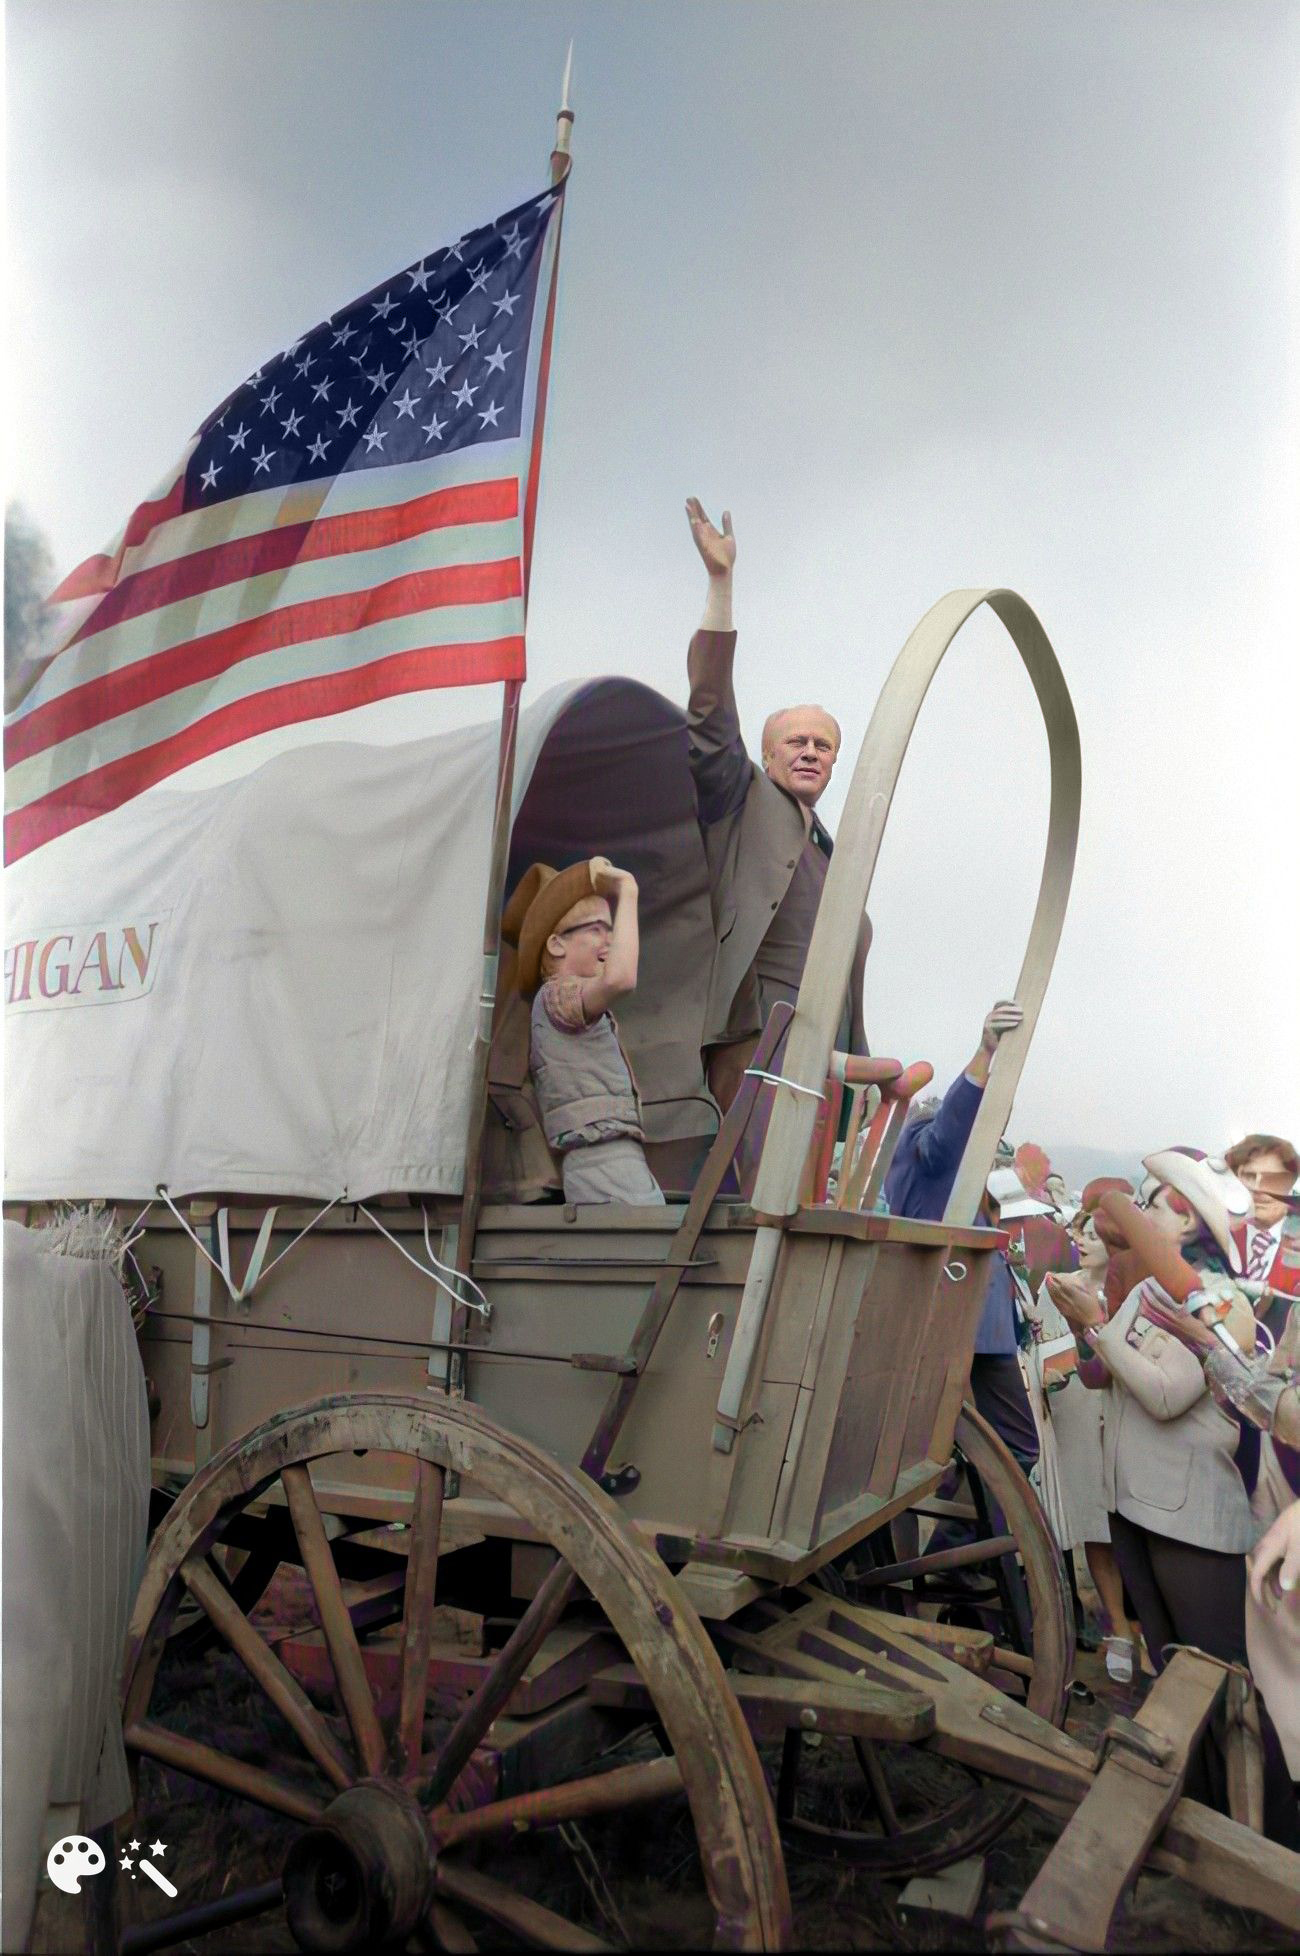 President Ford boards the Michigan wagon at the Bicentennial Wagon Train Pilgrimage encampment in Valley Forge State Park, Valley Forge, Pennsylvania, July 4, 1976. Courtesy of the Ford Library Museum